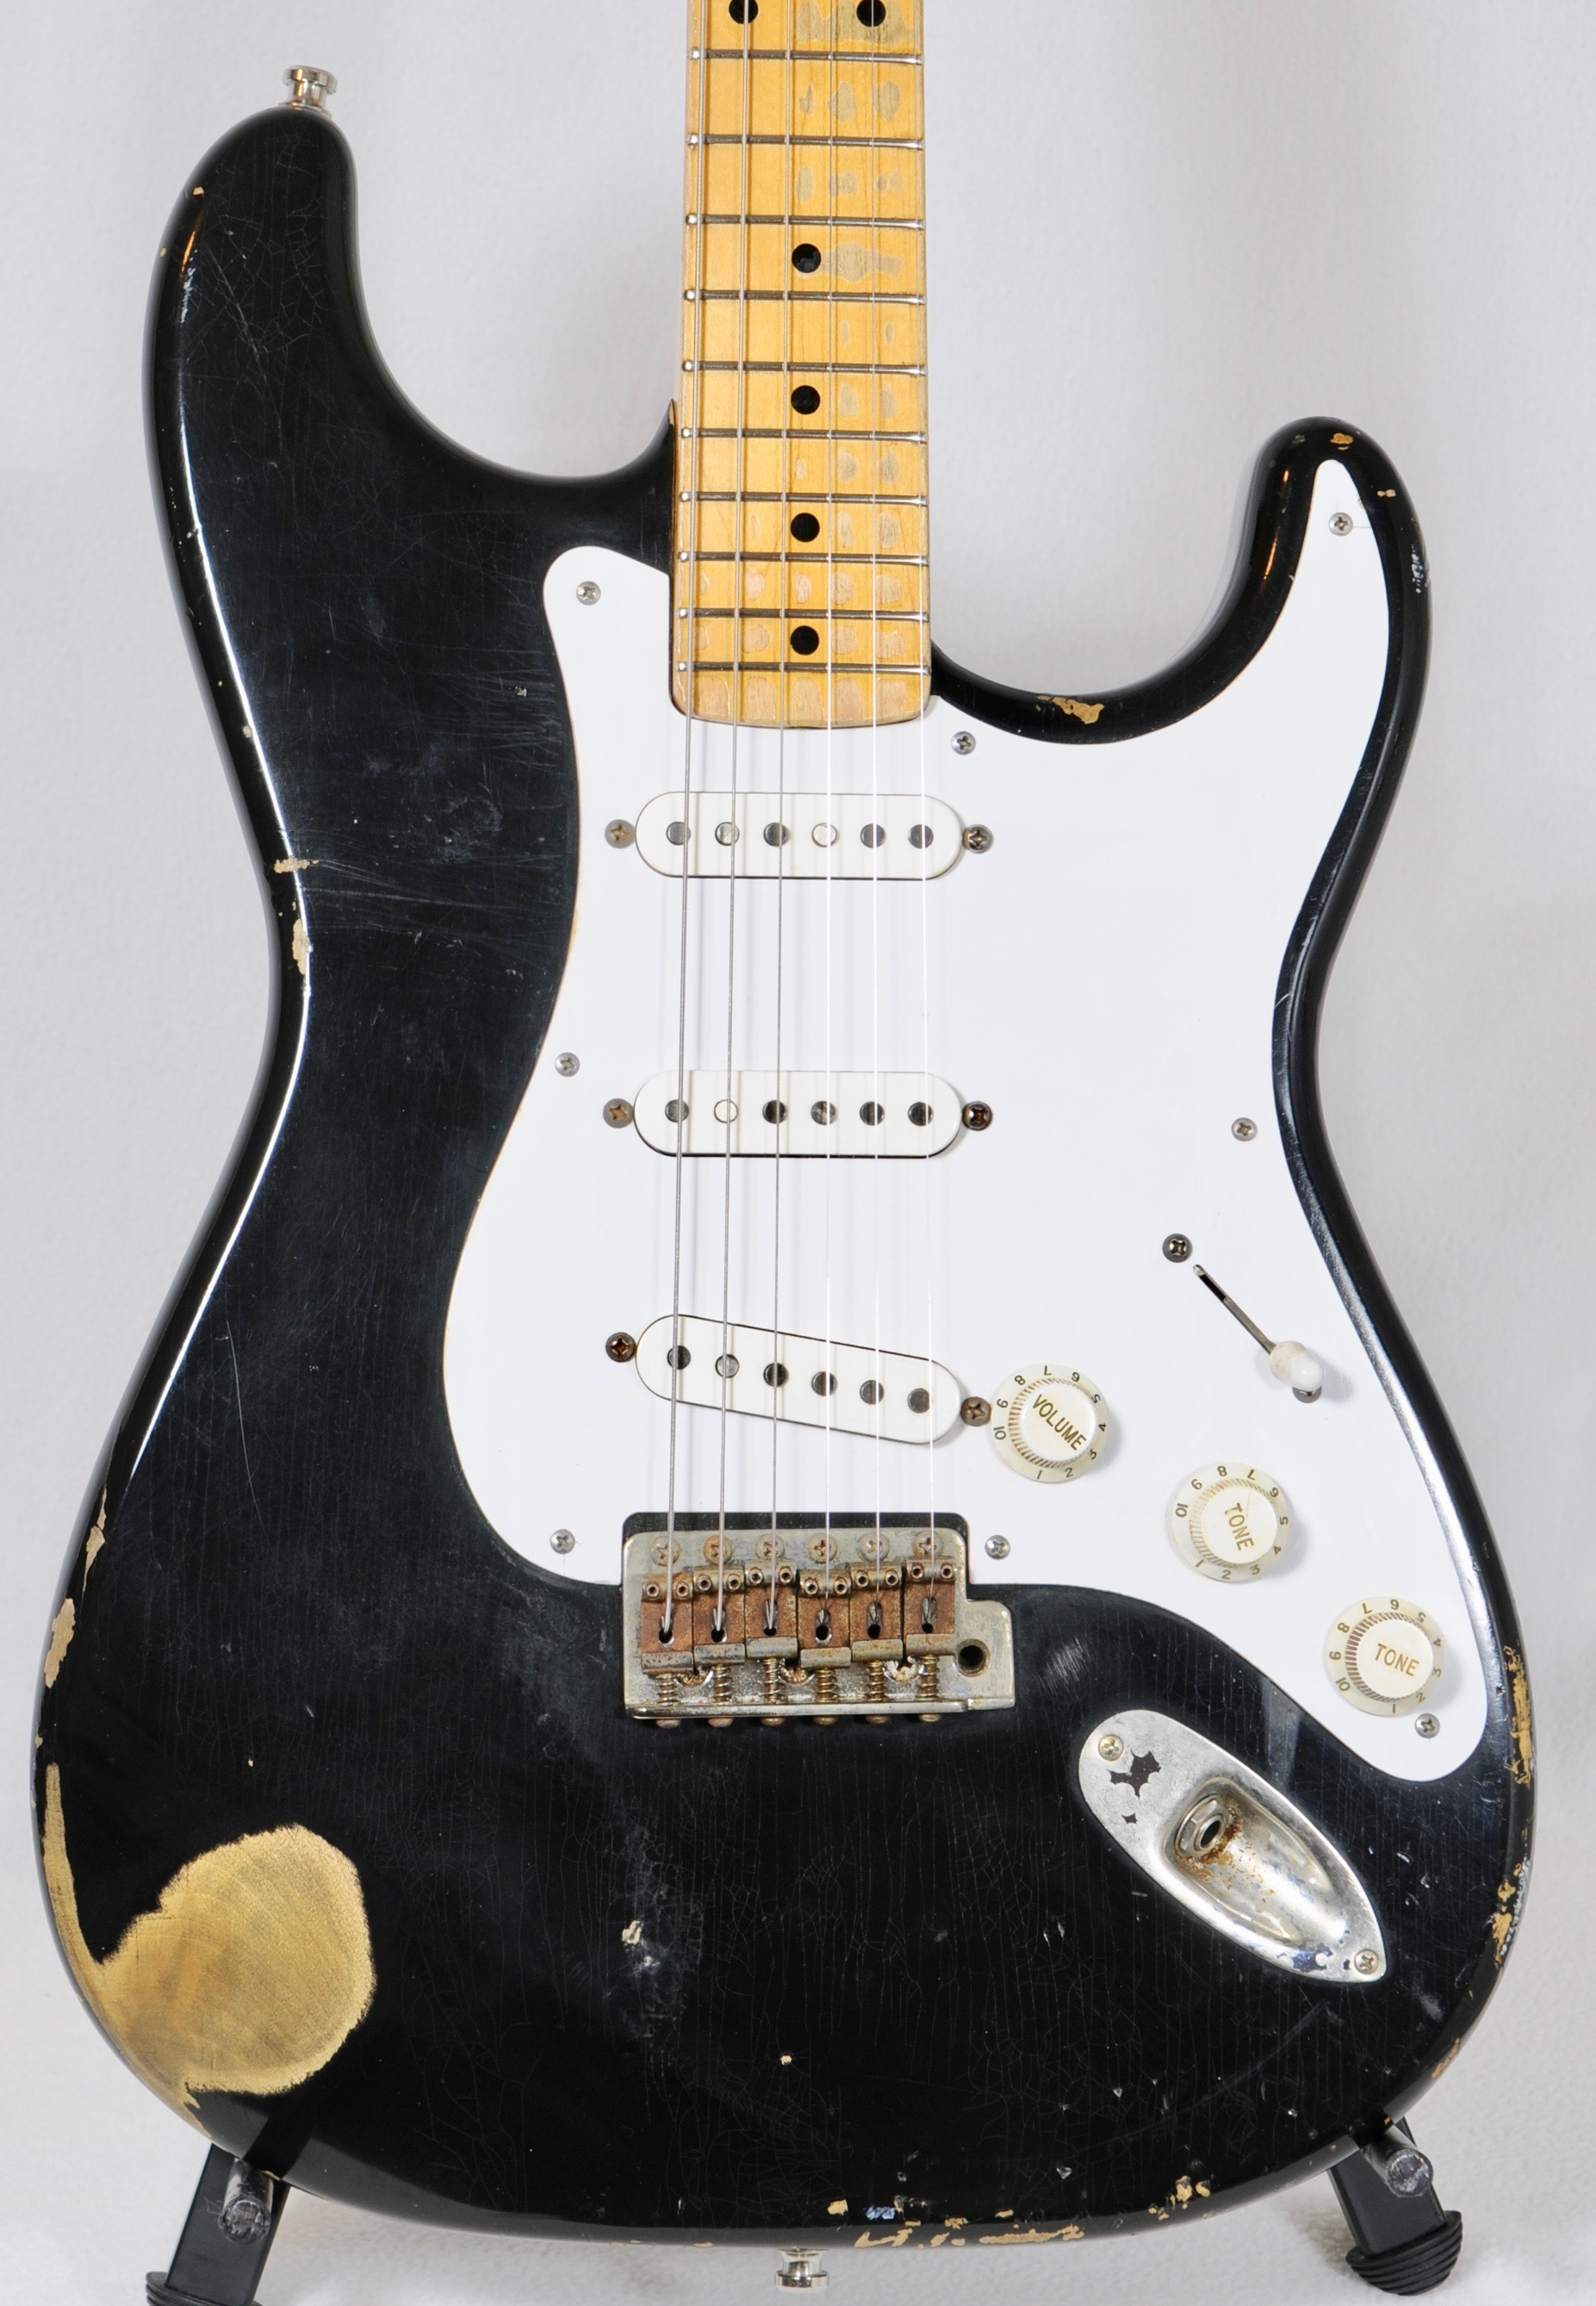 SEUF Stratocaster – VALUE ALERT! WOW guitar at competitive price!